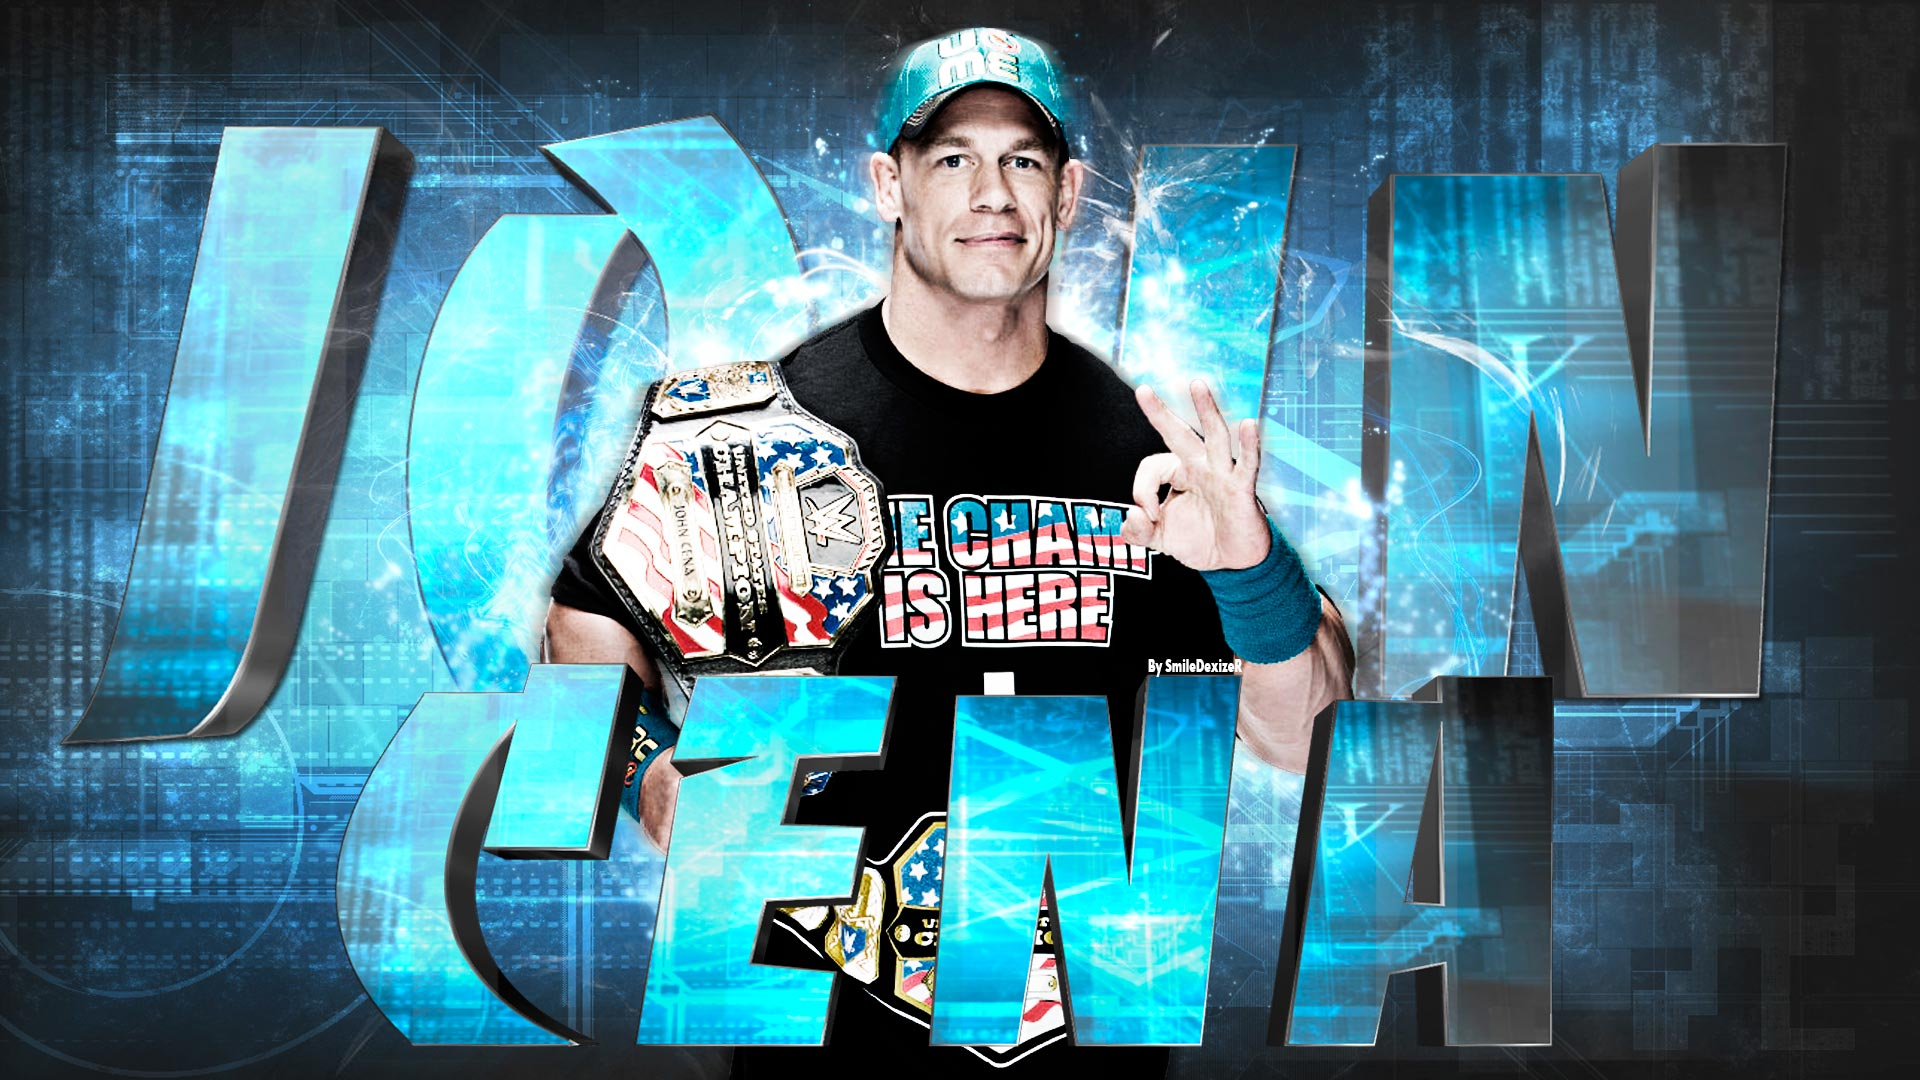 wwe john cena wallpapers 2015 hd wallpaper cave 1920x1080